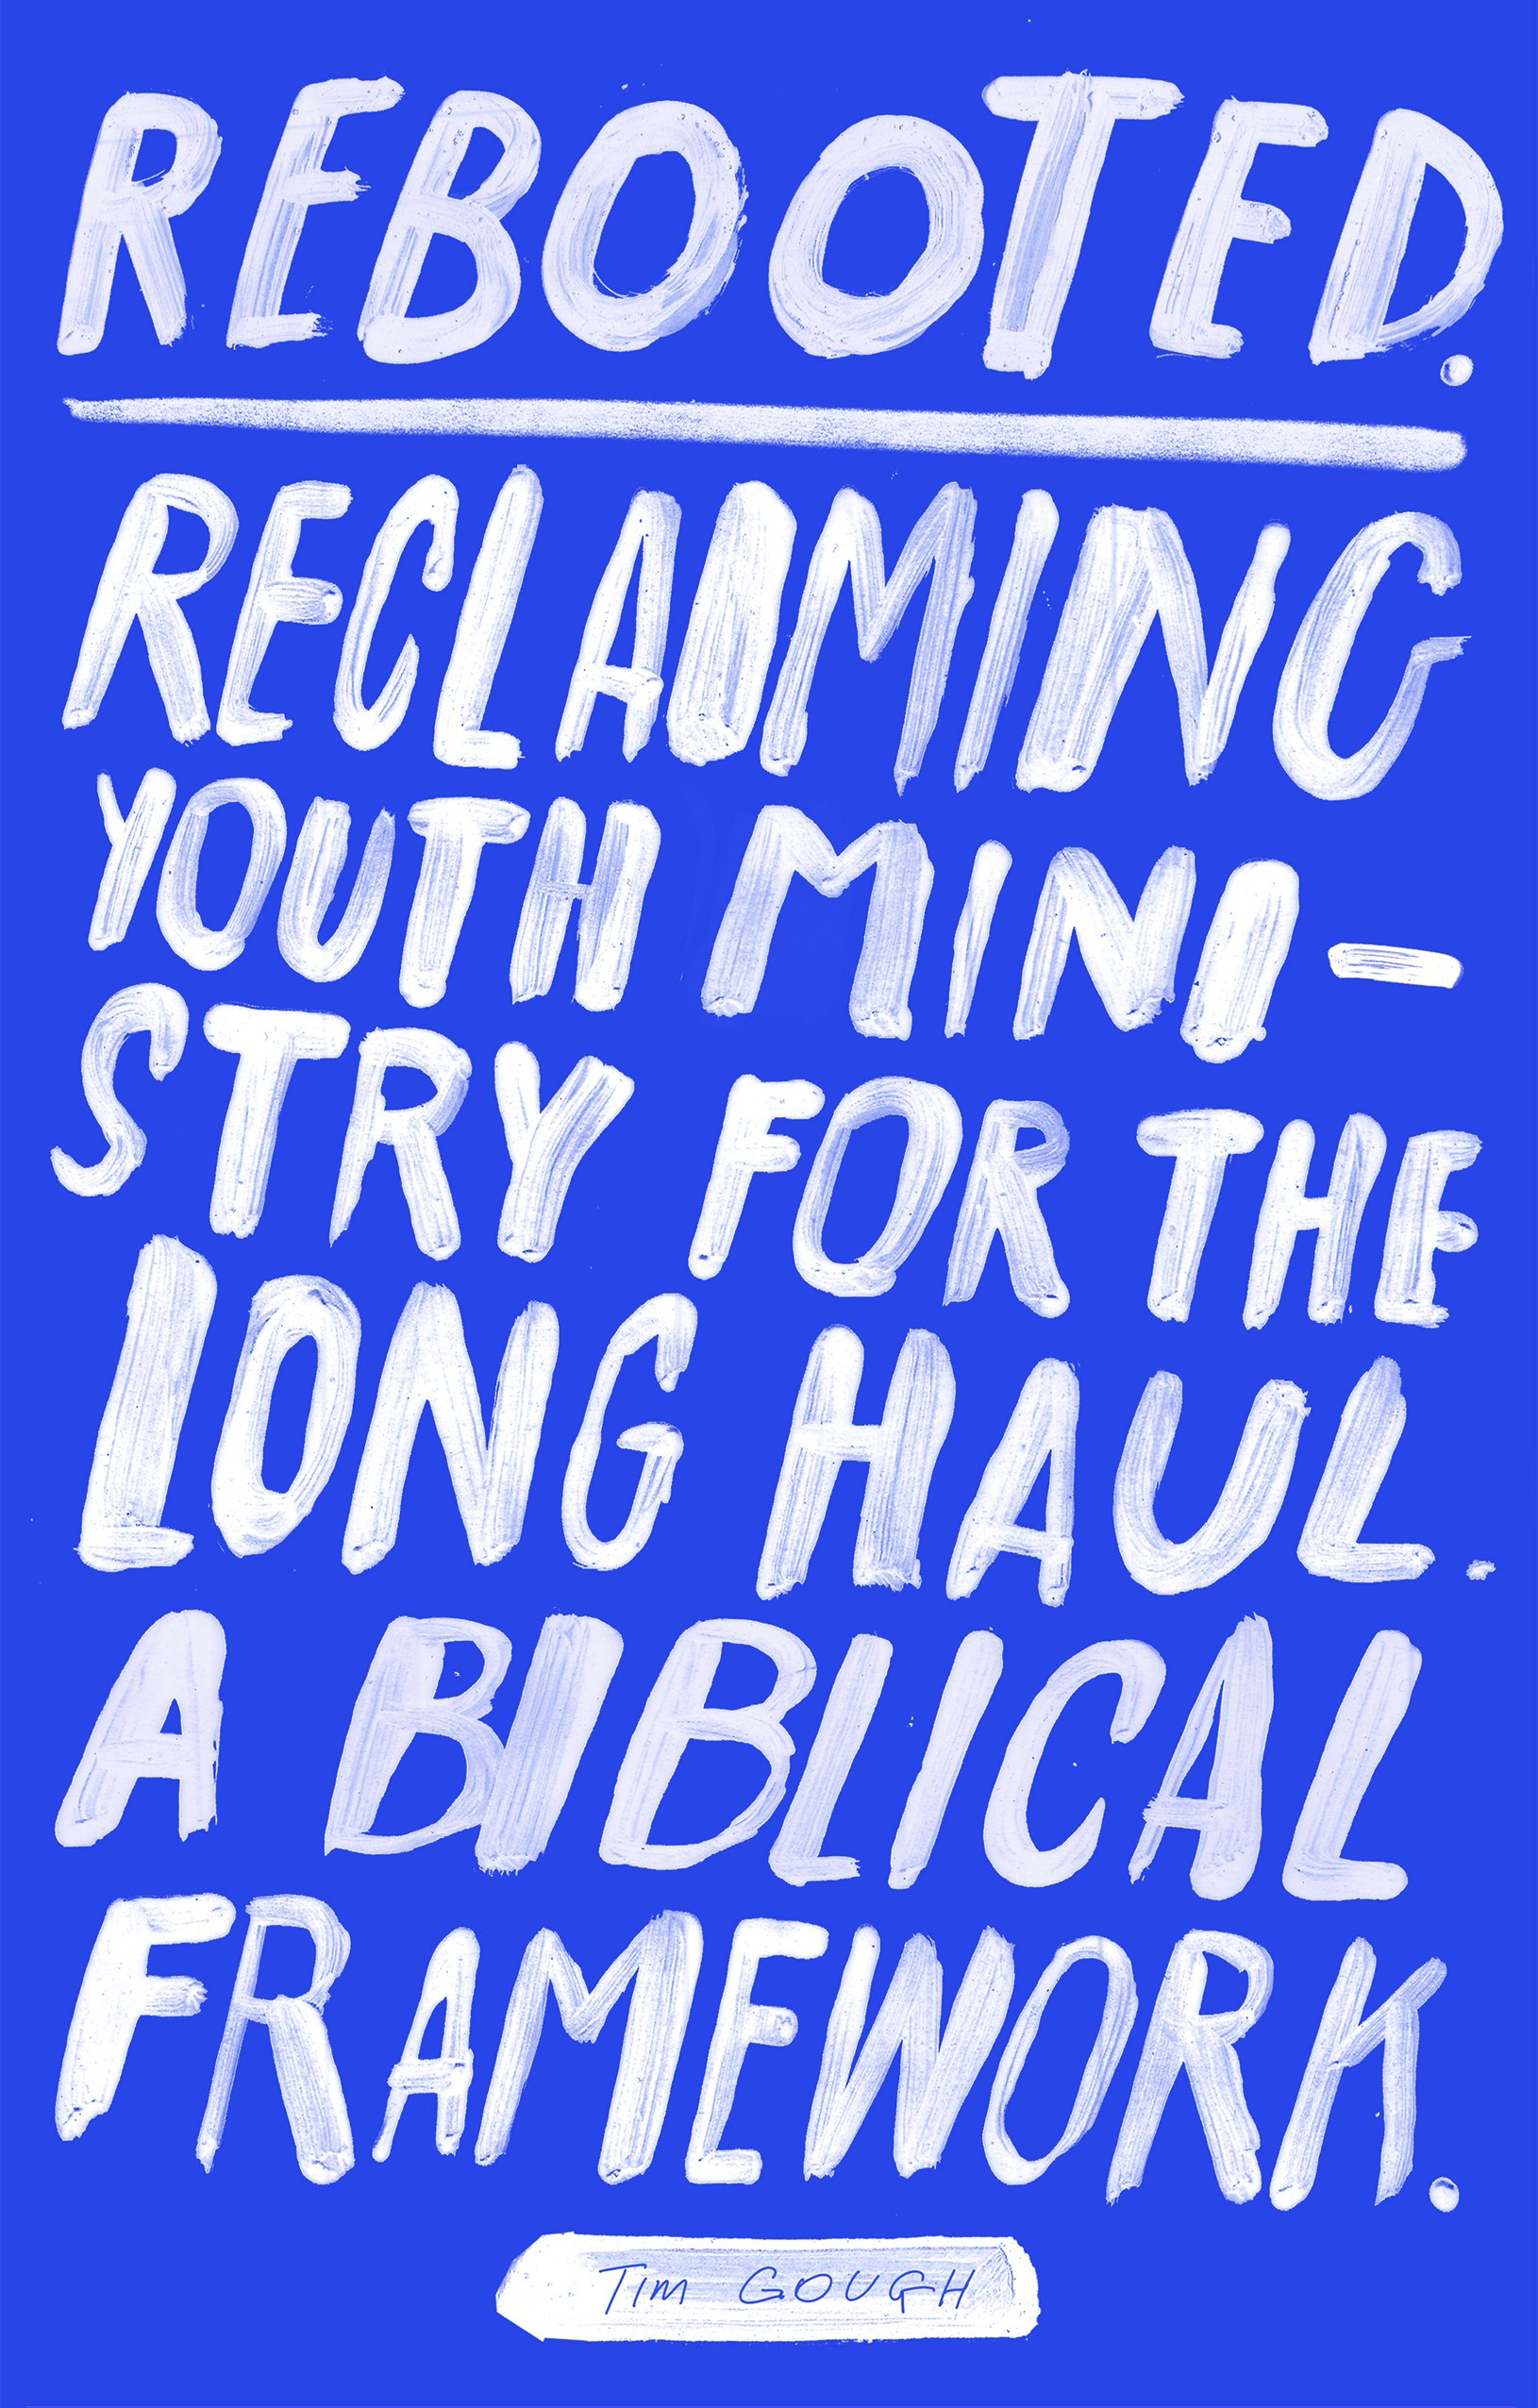 Rebooted: Reclaiming Youth Ministry For The Long Haul - A Biblical